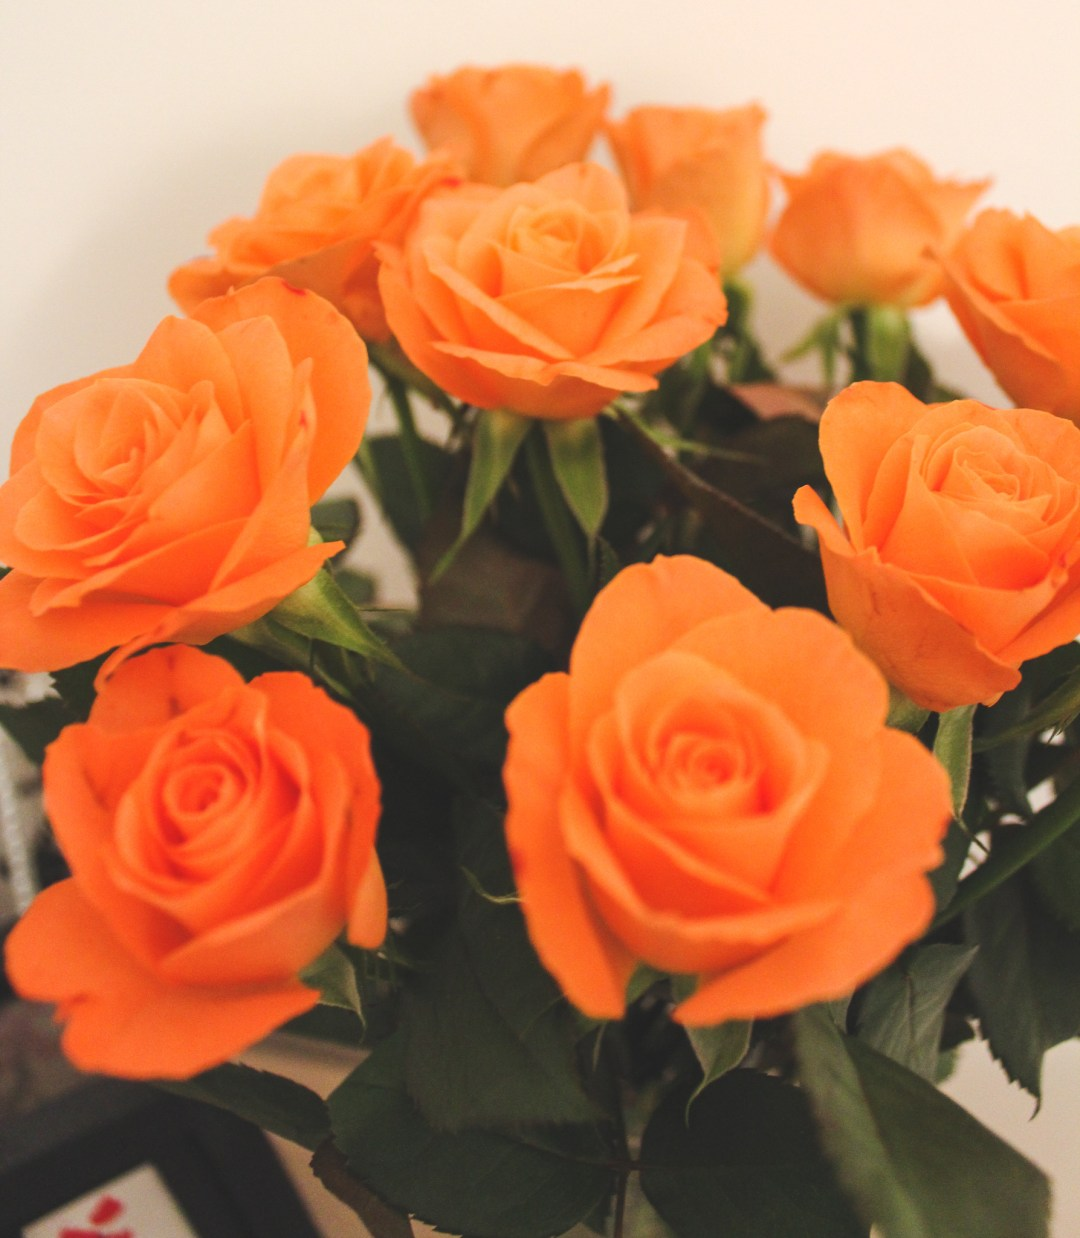 Orange roses: Me at 24 - reflections on a year of being 24, thinking about all that was achieved, done, and changed in the past year.